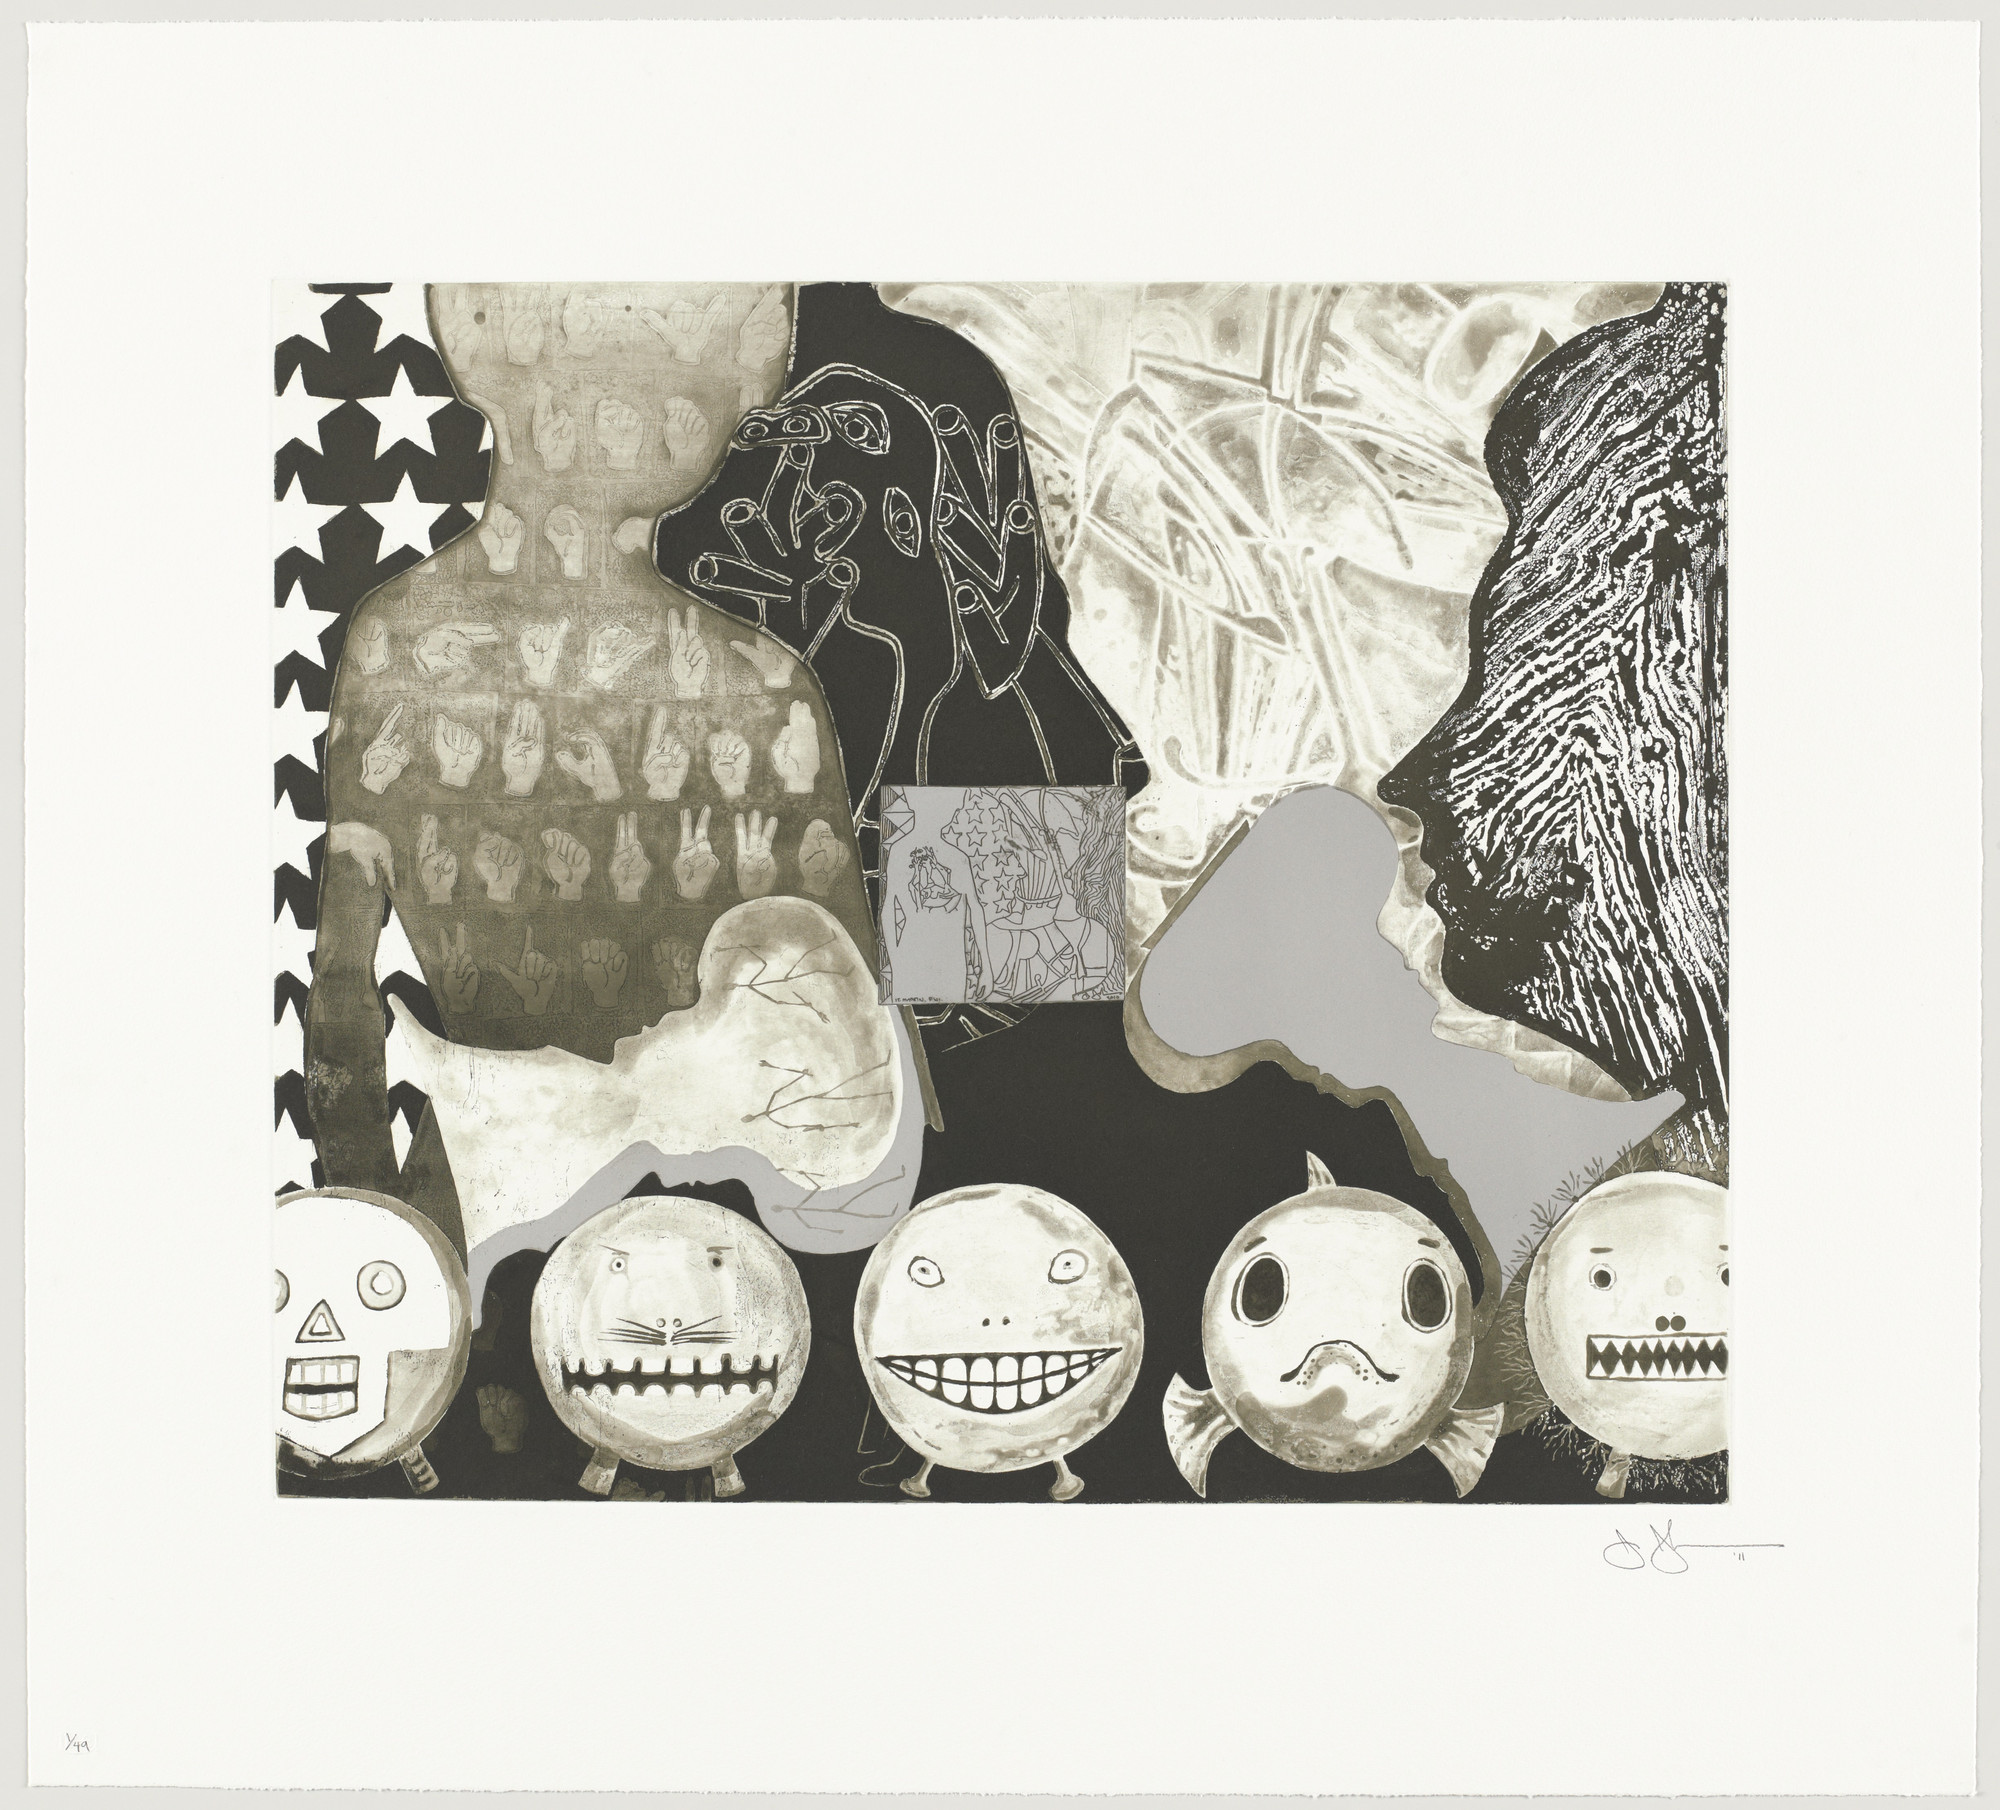 Jasper Johns. Shrinky Dink 4. 2011